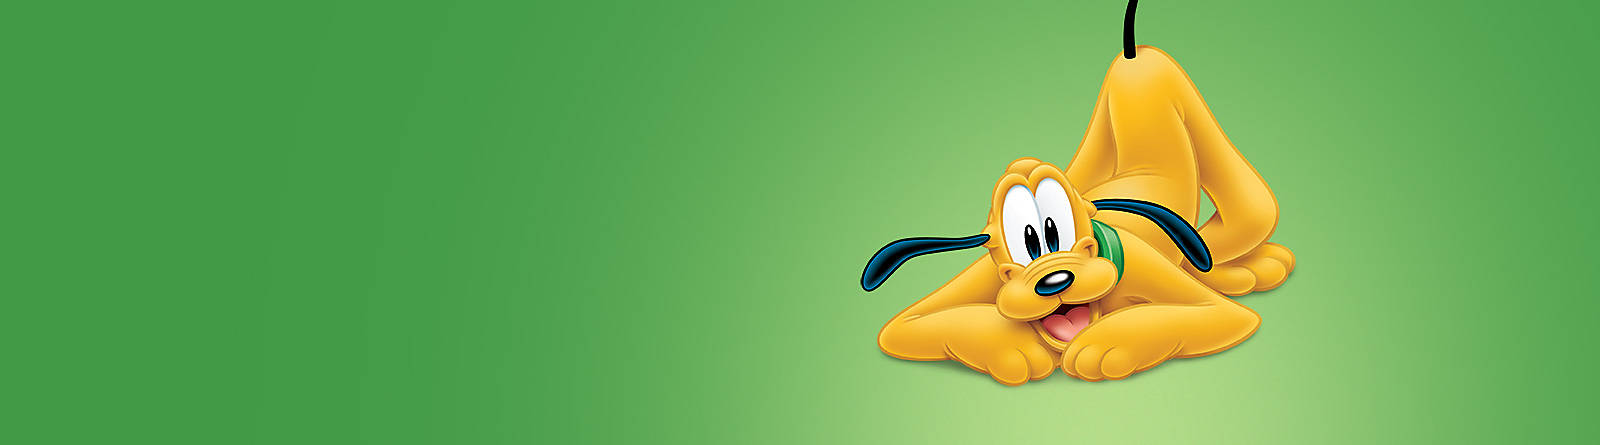 Pluto Discover our range of Pluto merchandise featuring soft toys, collectibles, mugs and more